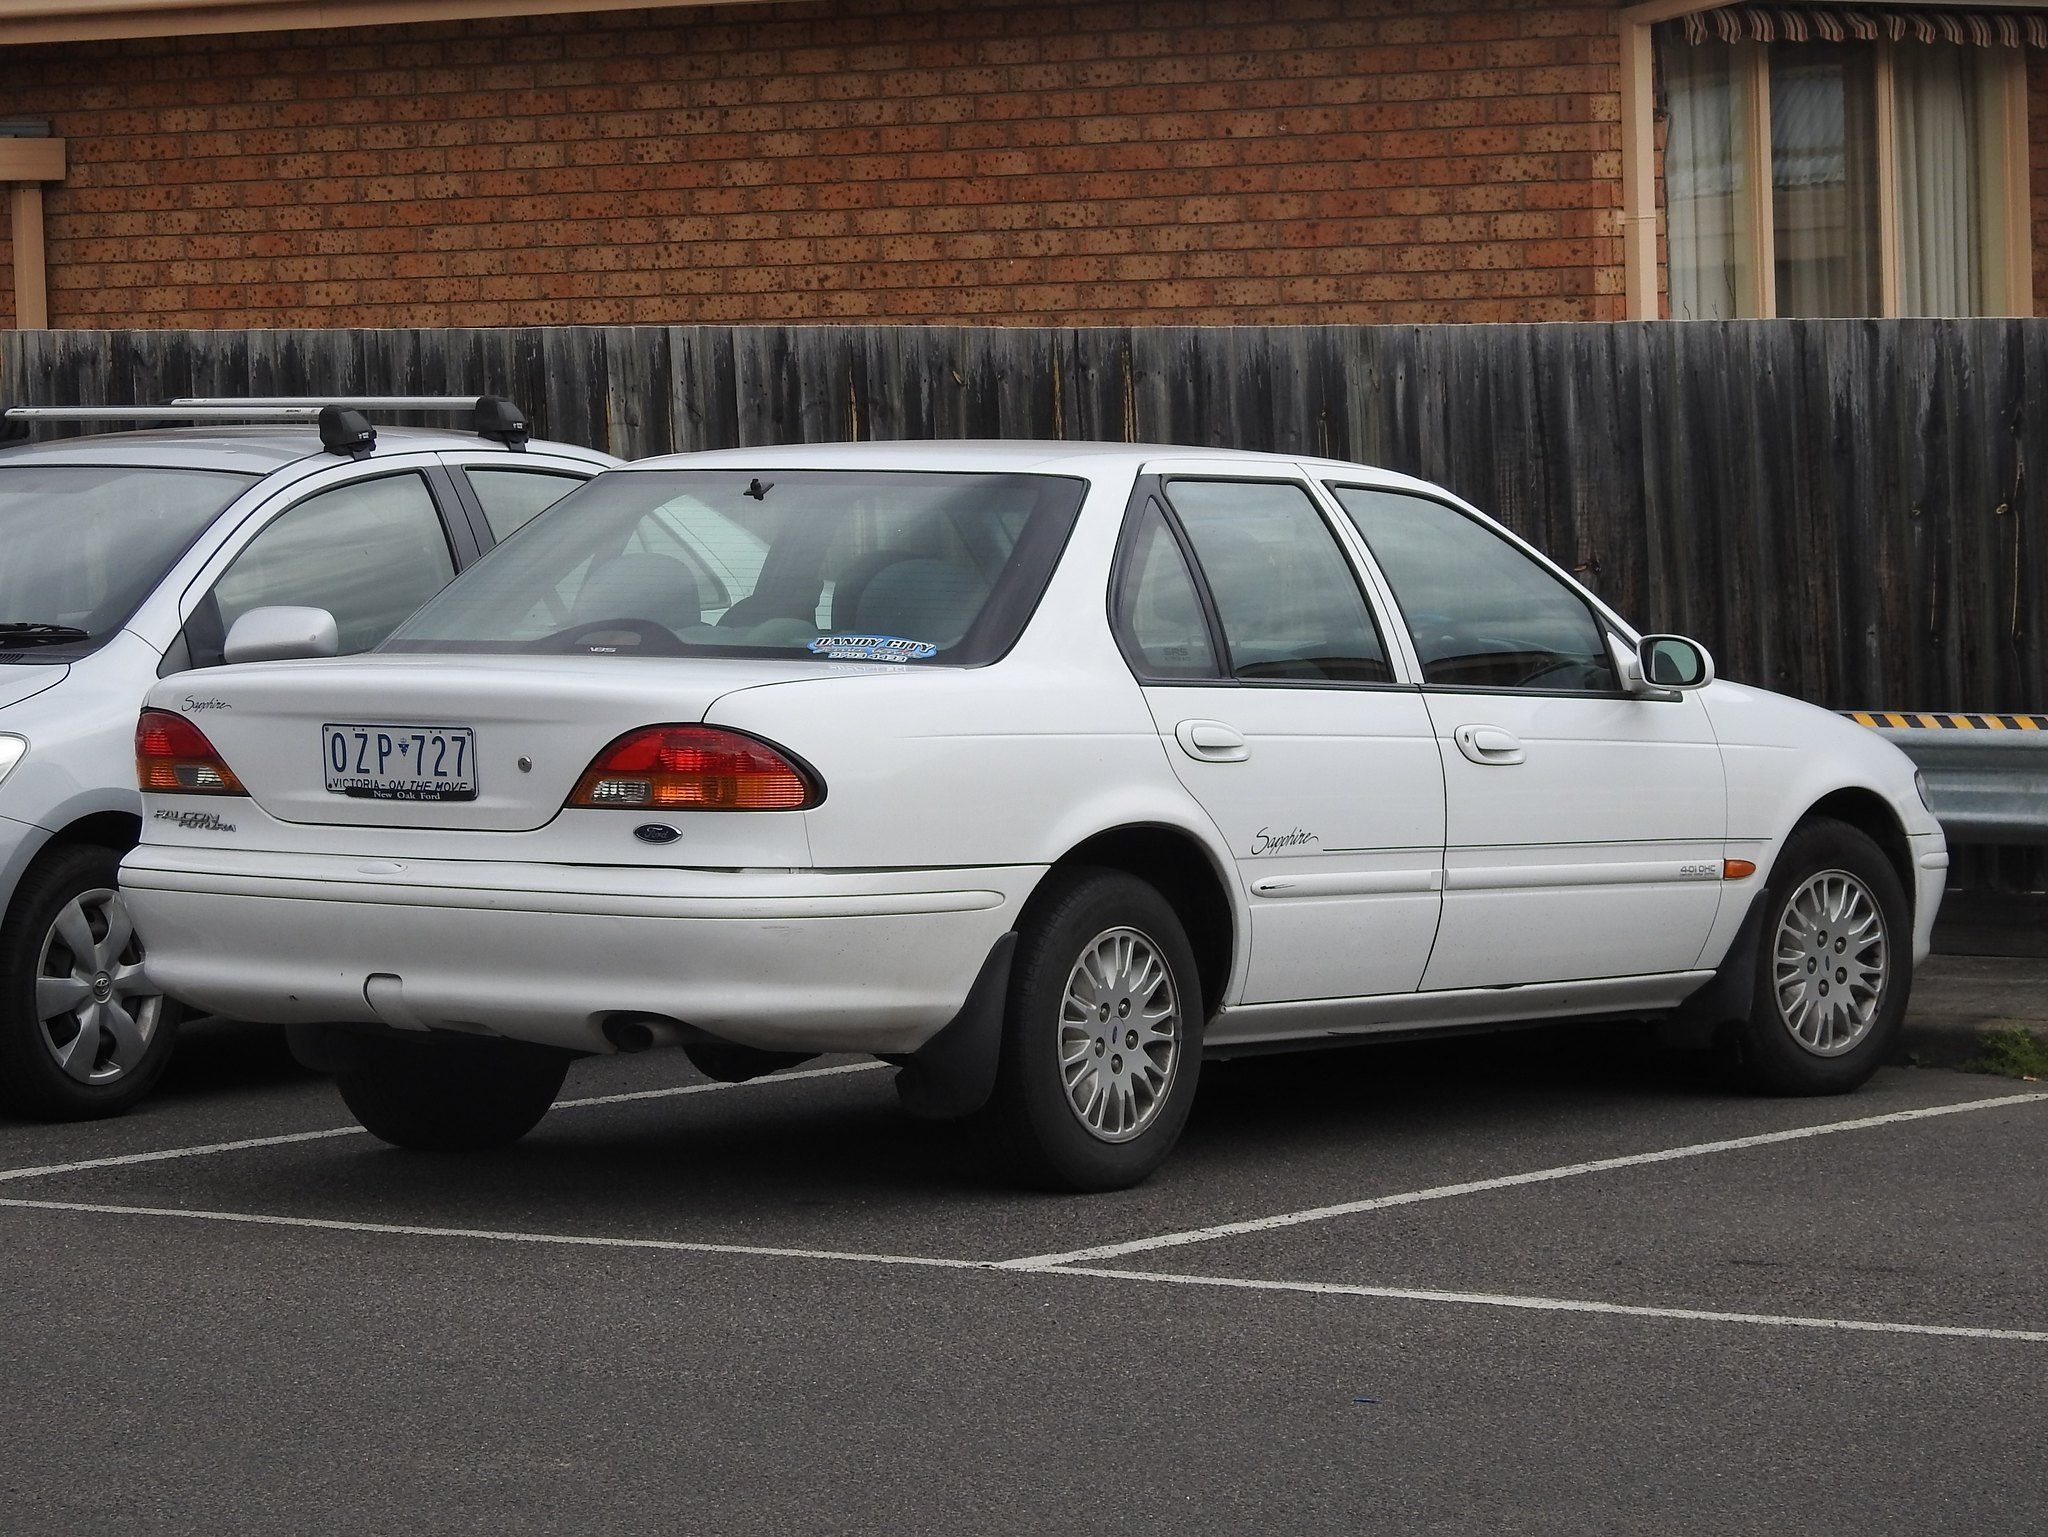 1998 Ford El Falcon Futura Sapphire With Images